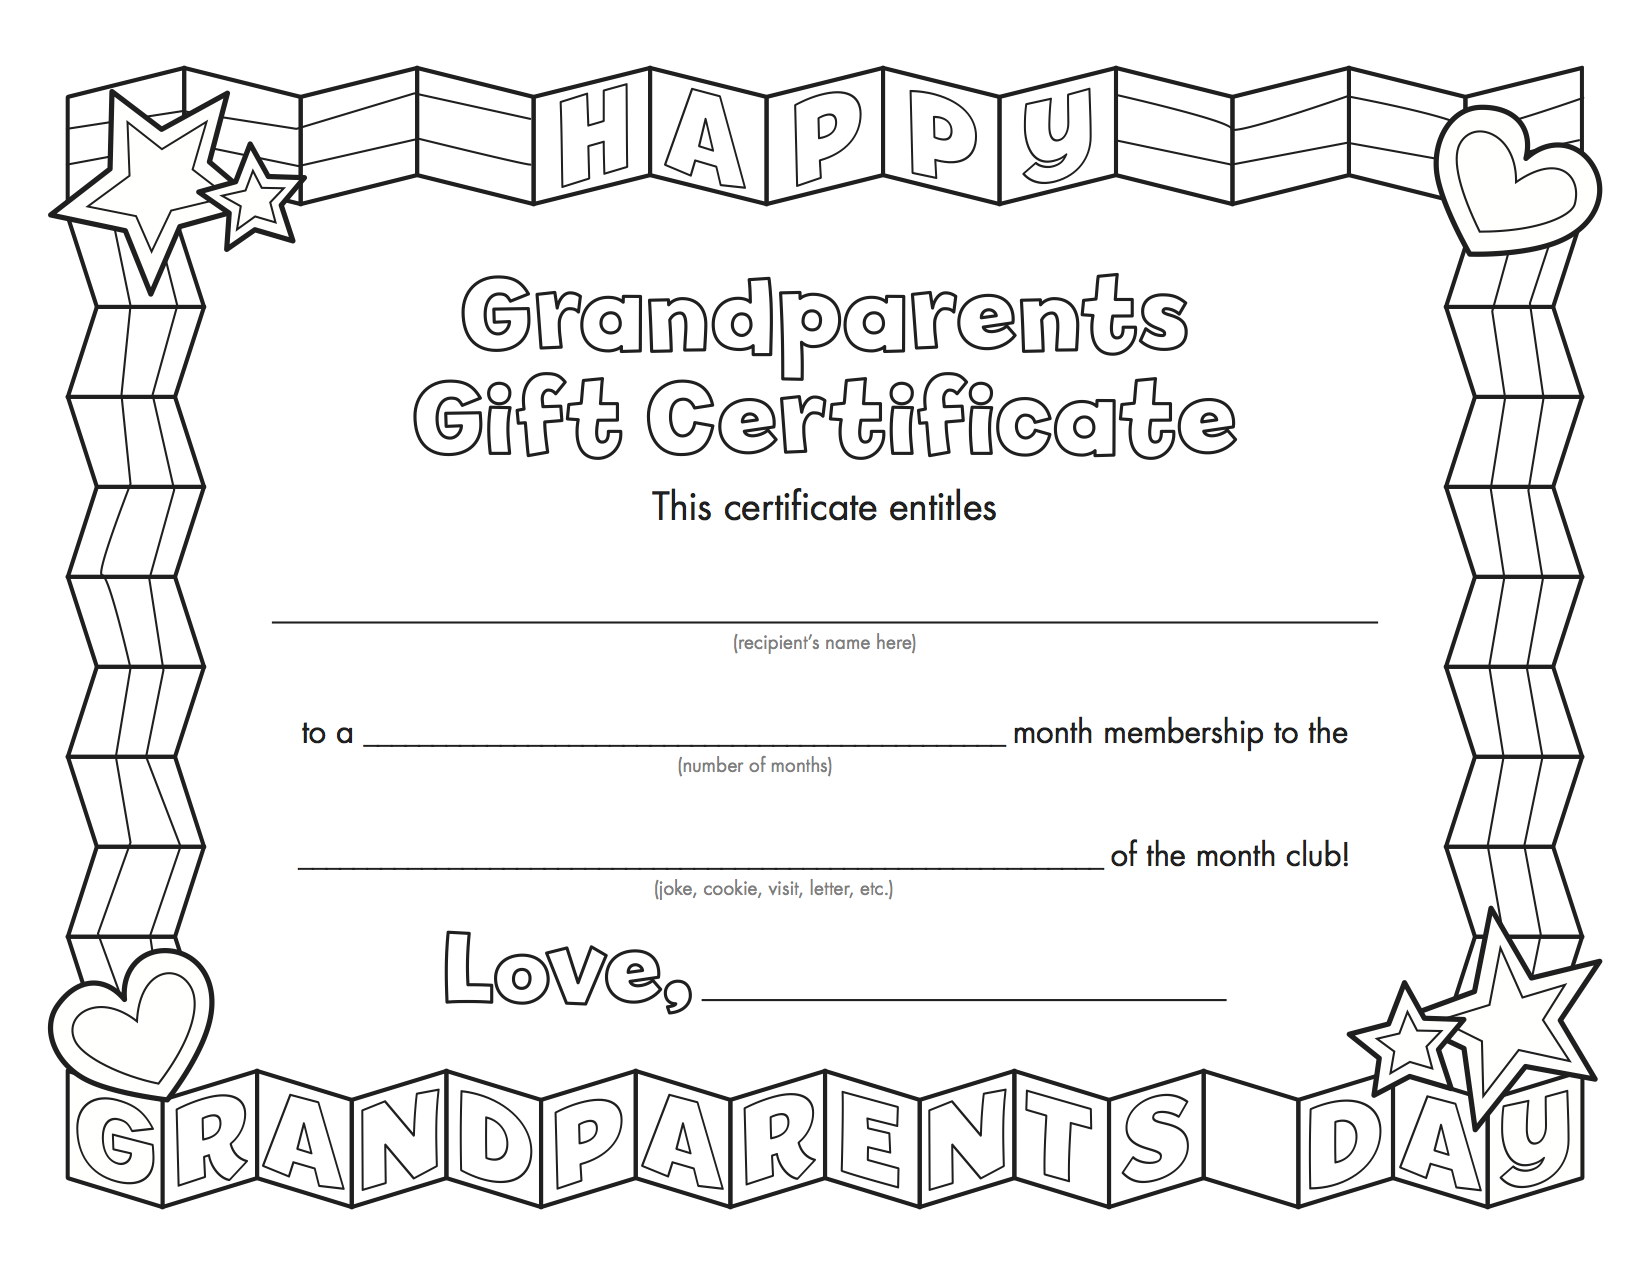 Grandparentsday Copy